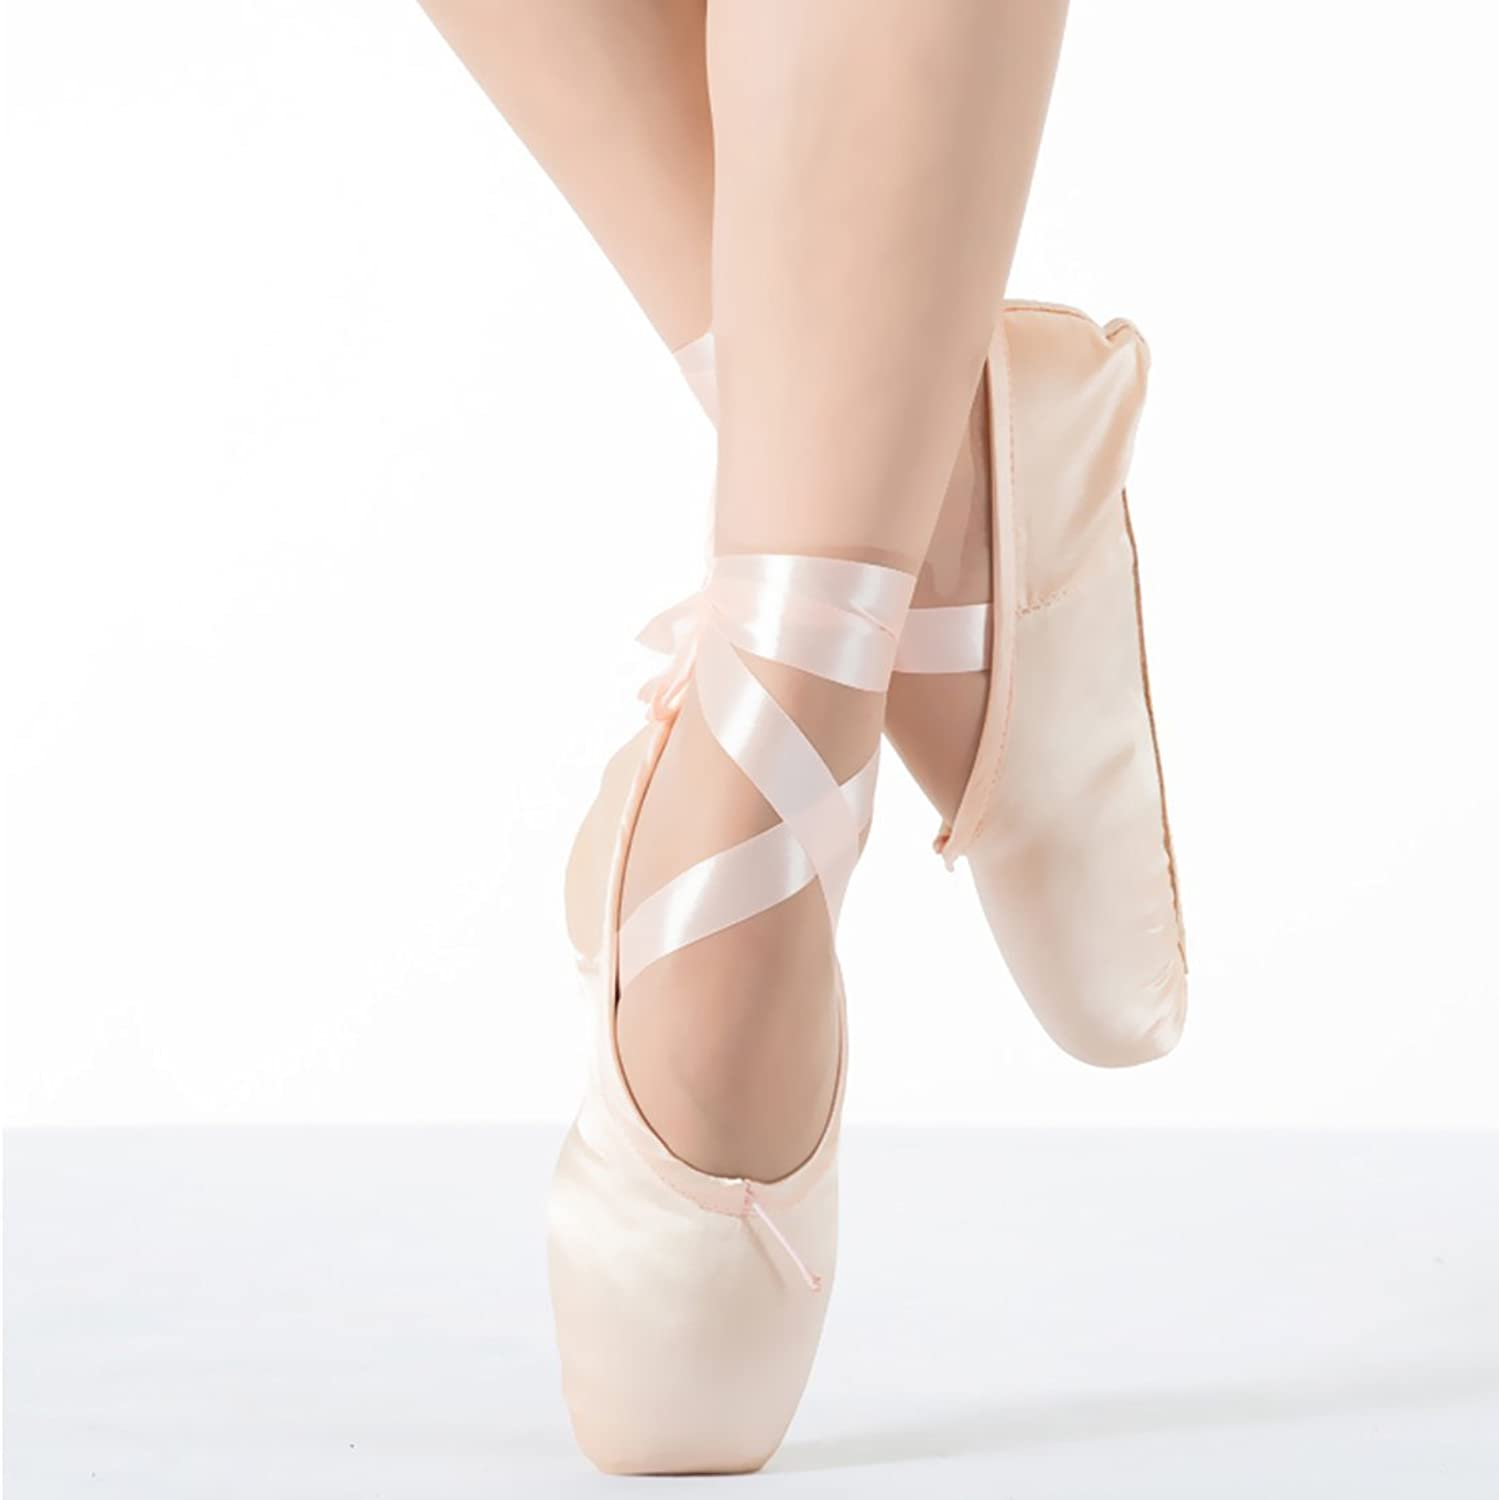 KUKOME New Ballet Dance Toe shoes Professional Ladies Satin Pointe shoes (Pink, EU39 ( Inner Length 250mm=9.84inch))